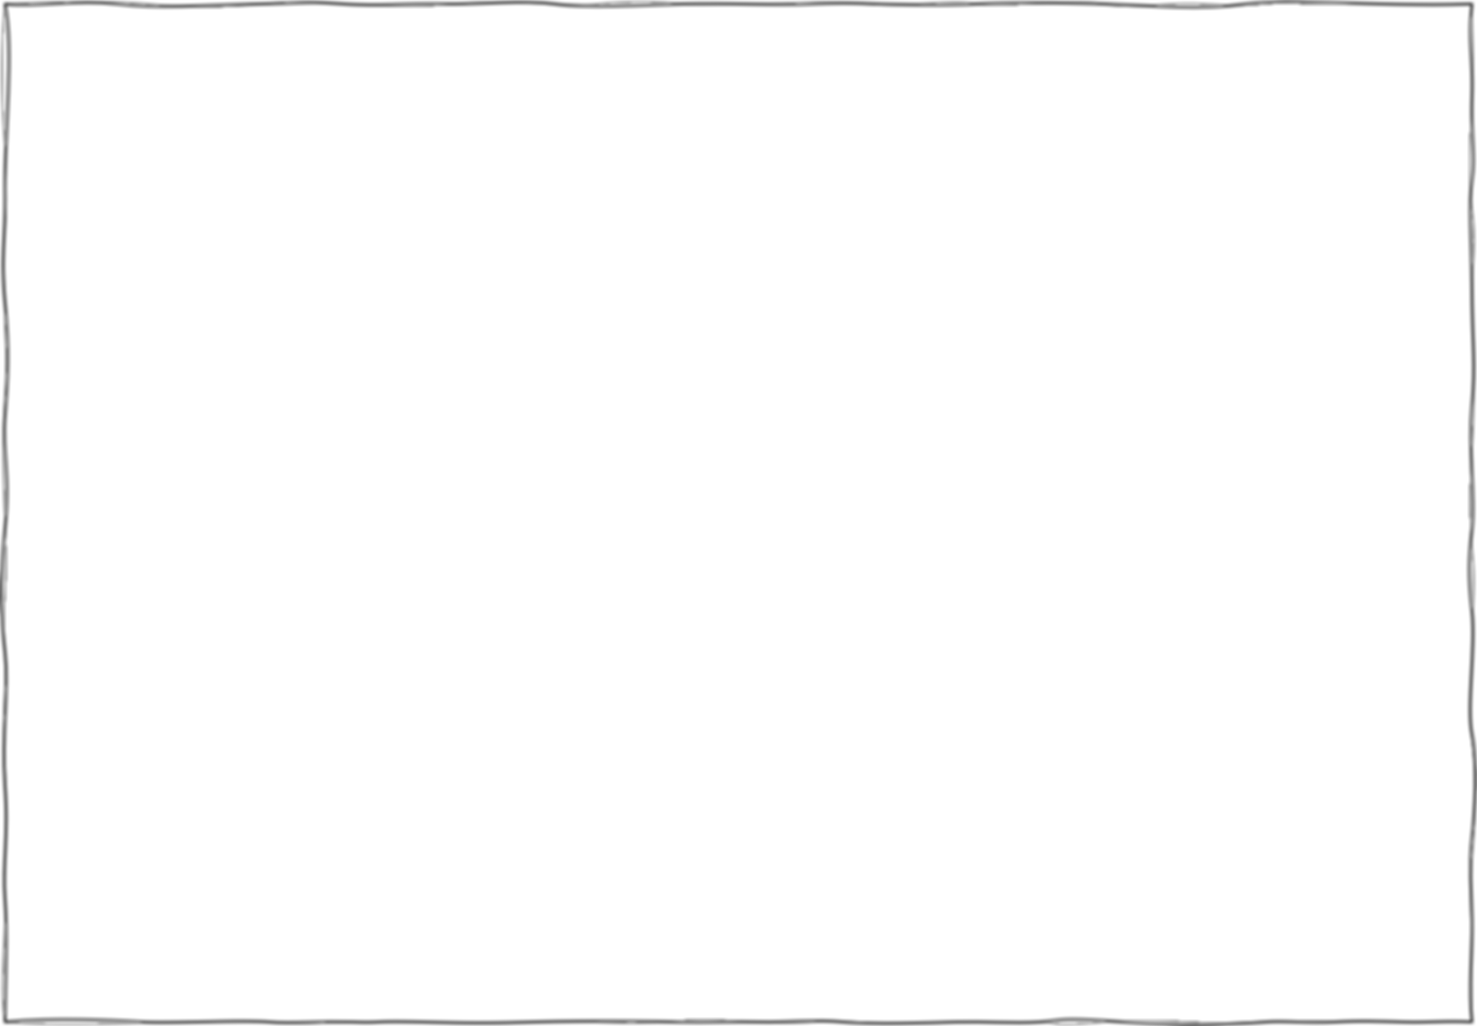 Squiggly box (powerpoints).png